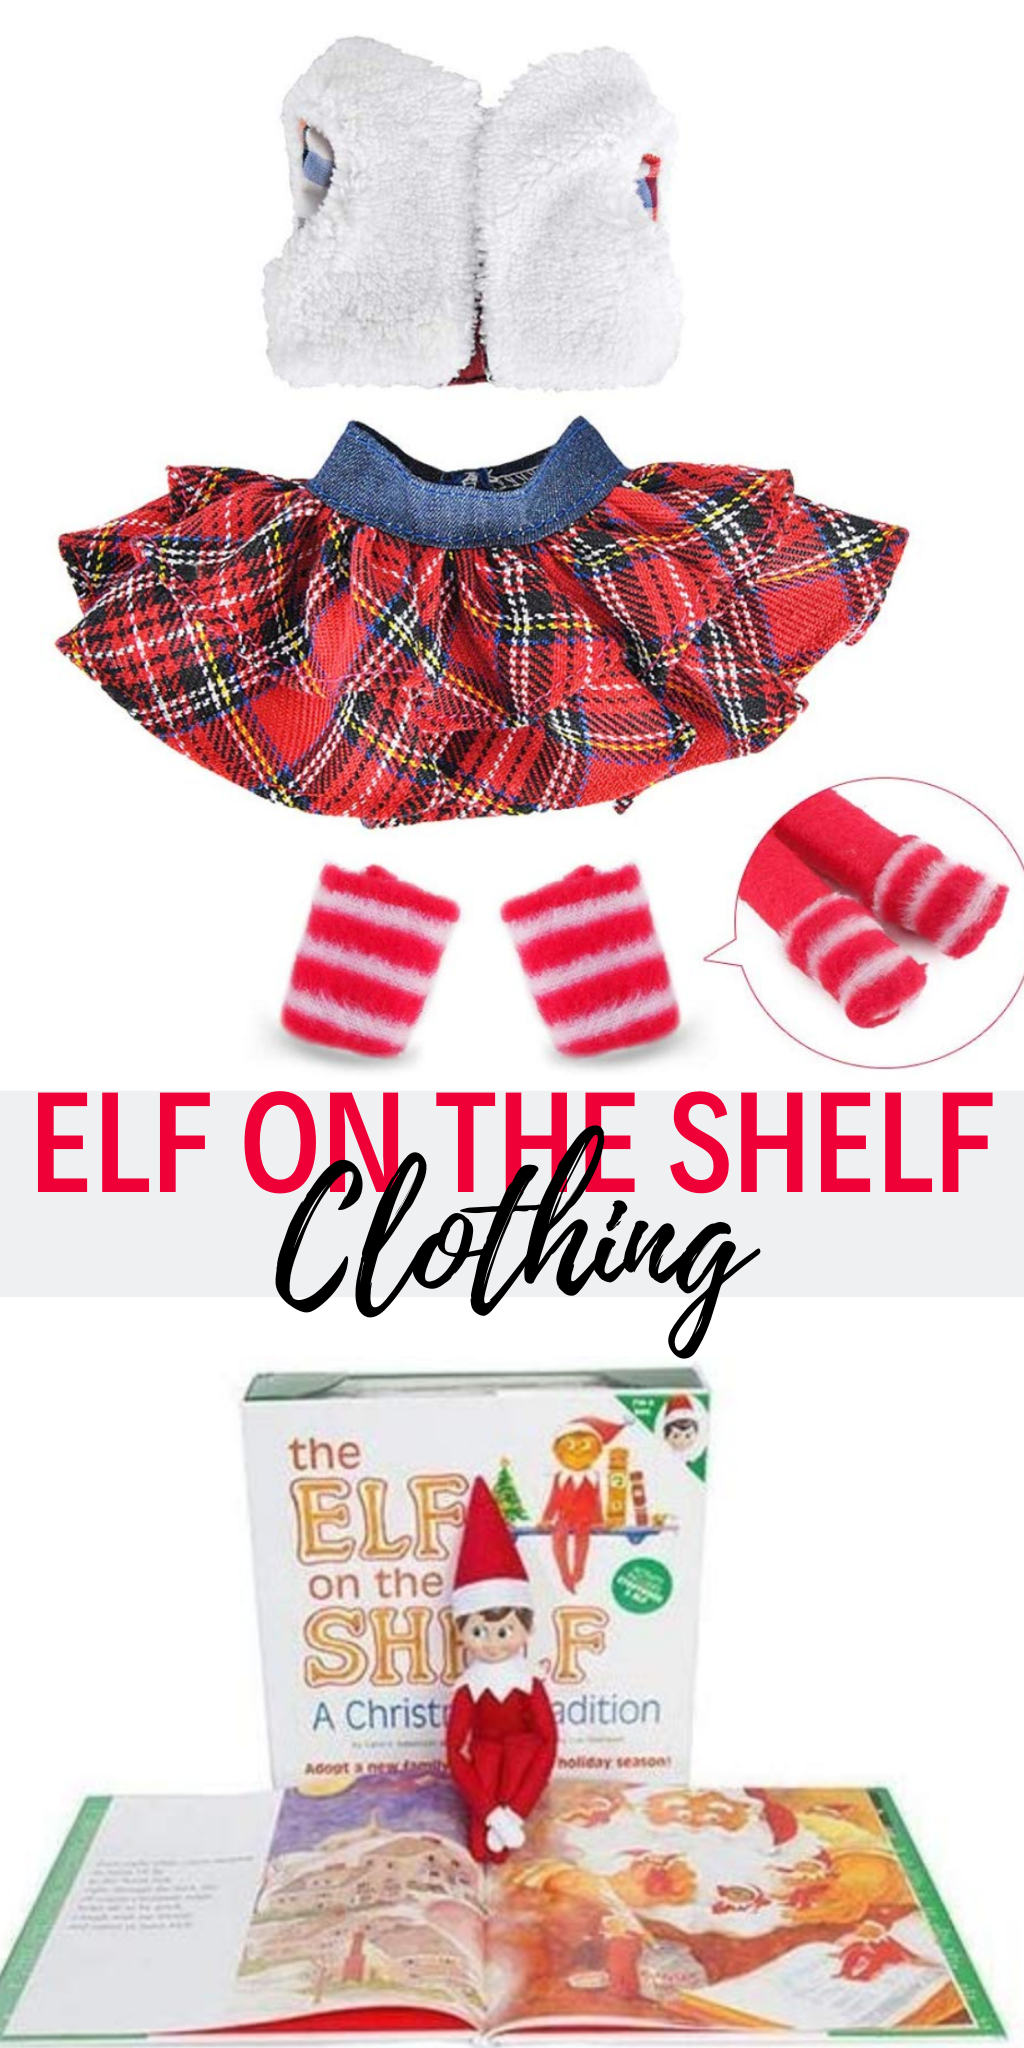 Since so many are into the Elf on the Shelf, how about dressing him (or her) up with some fun Elf on the Shelf clothing. There are so many new items this year and the kids will be surprised!